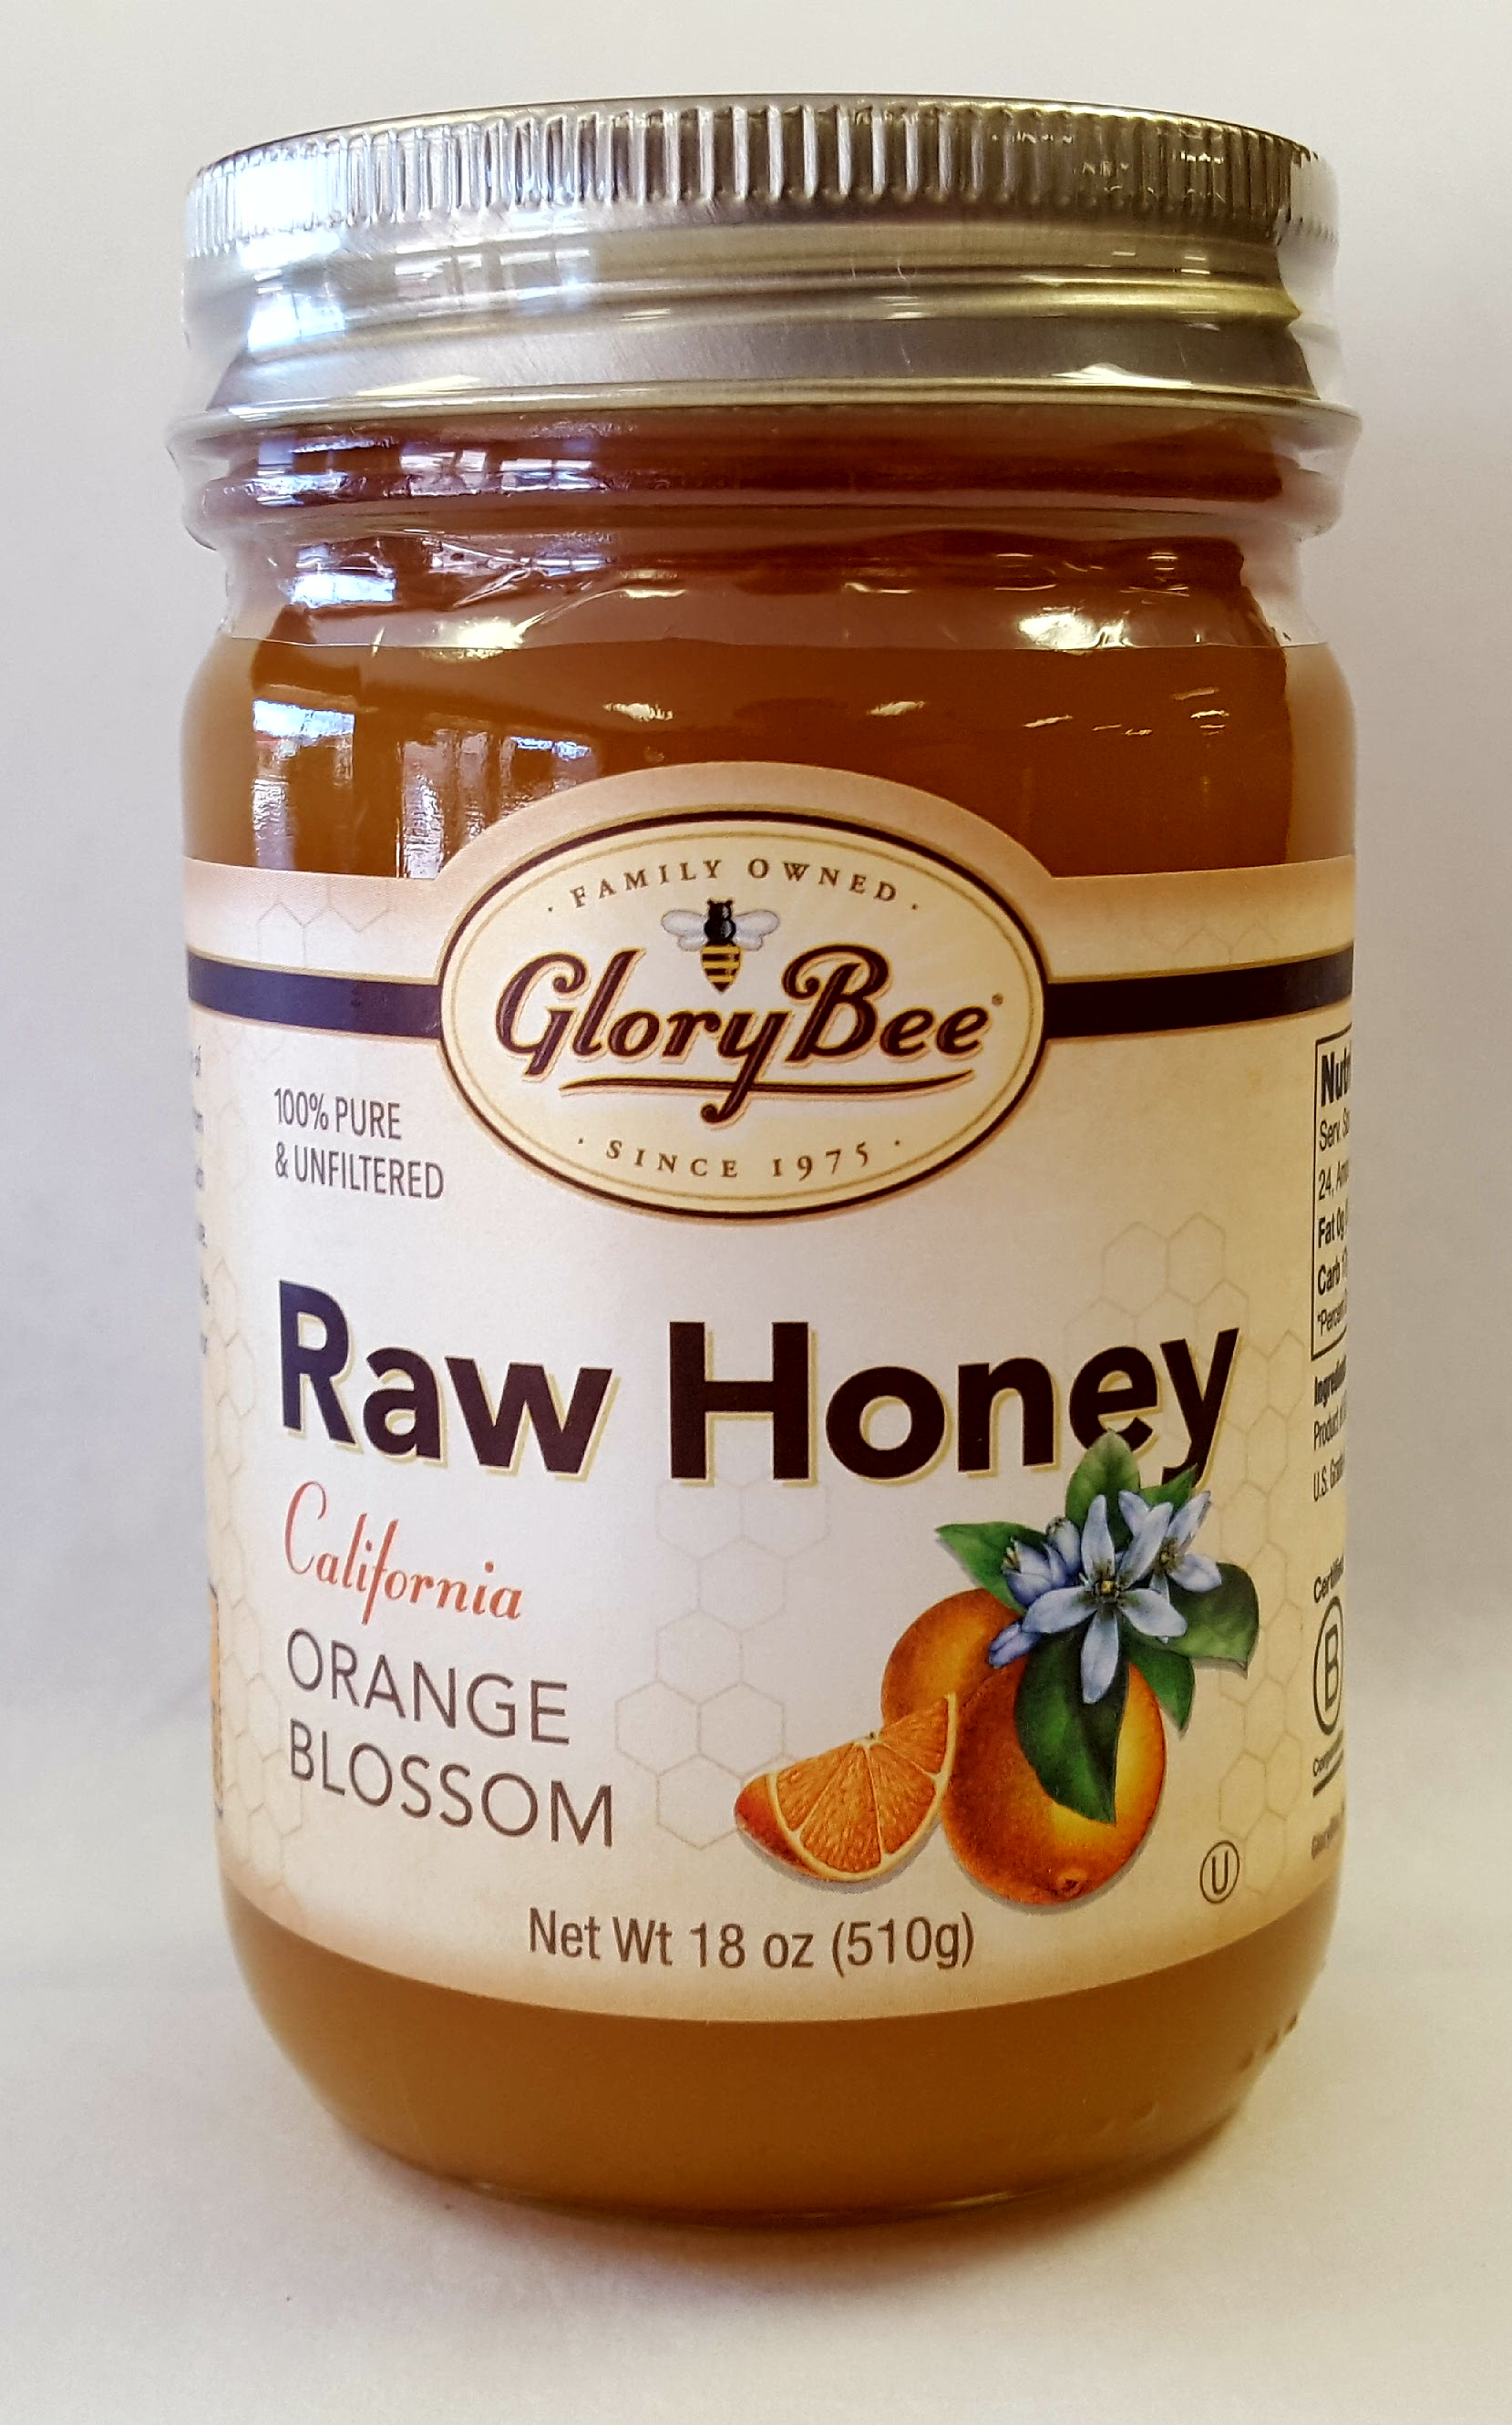 Raw California Orange Blossom Honey